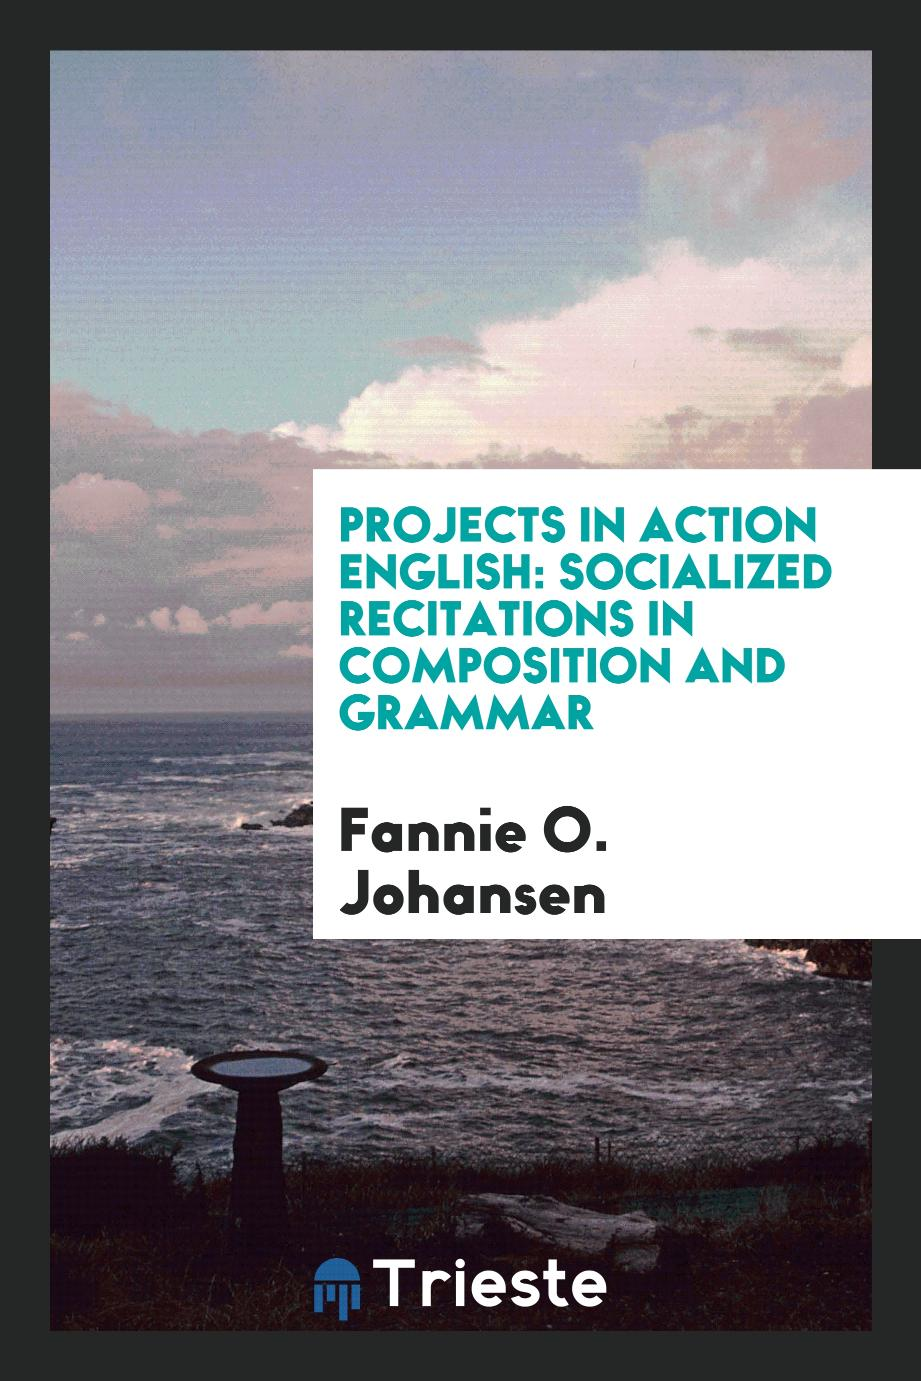 Projects in action English: socialized recitations in composition and grammar